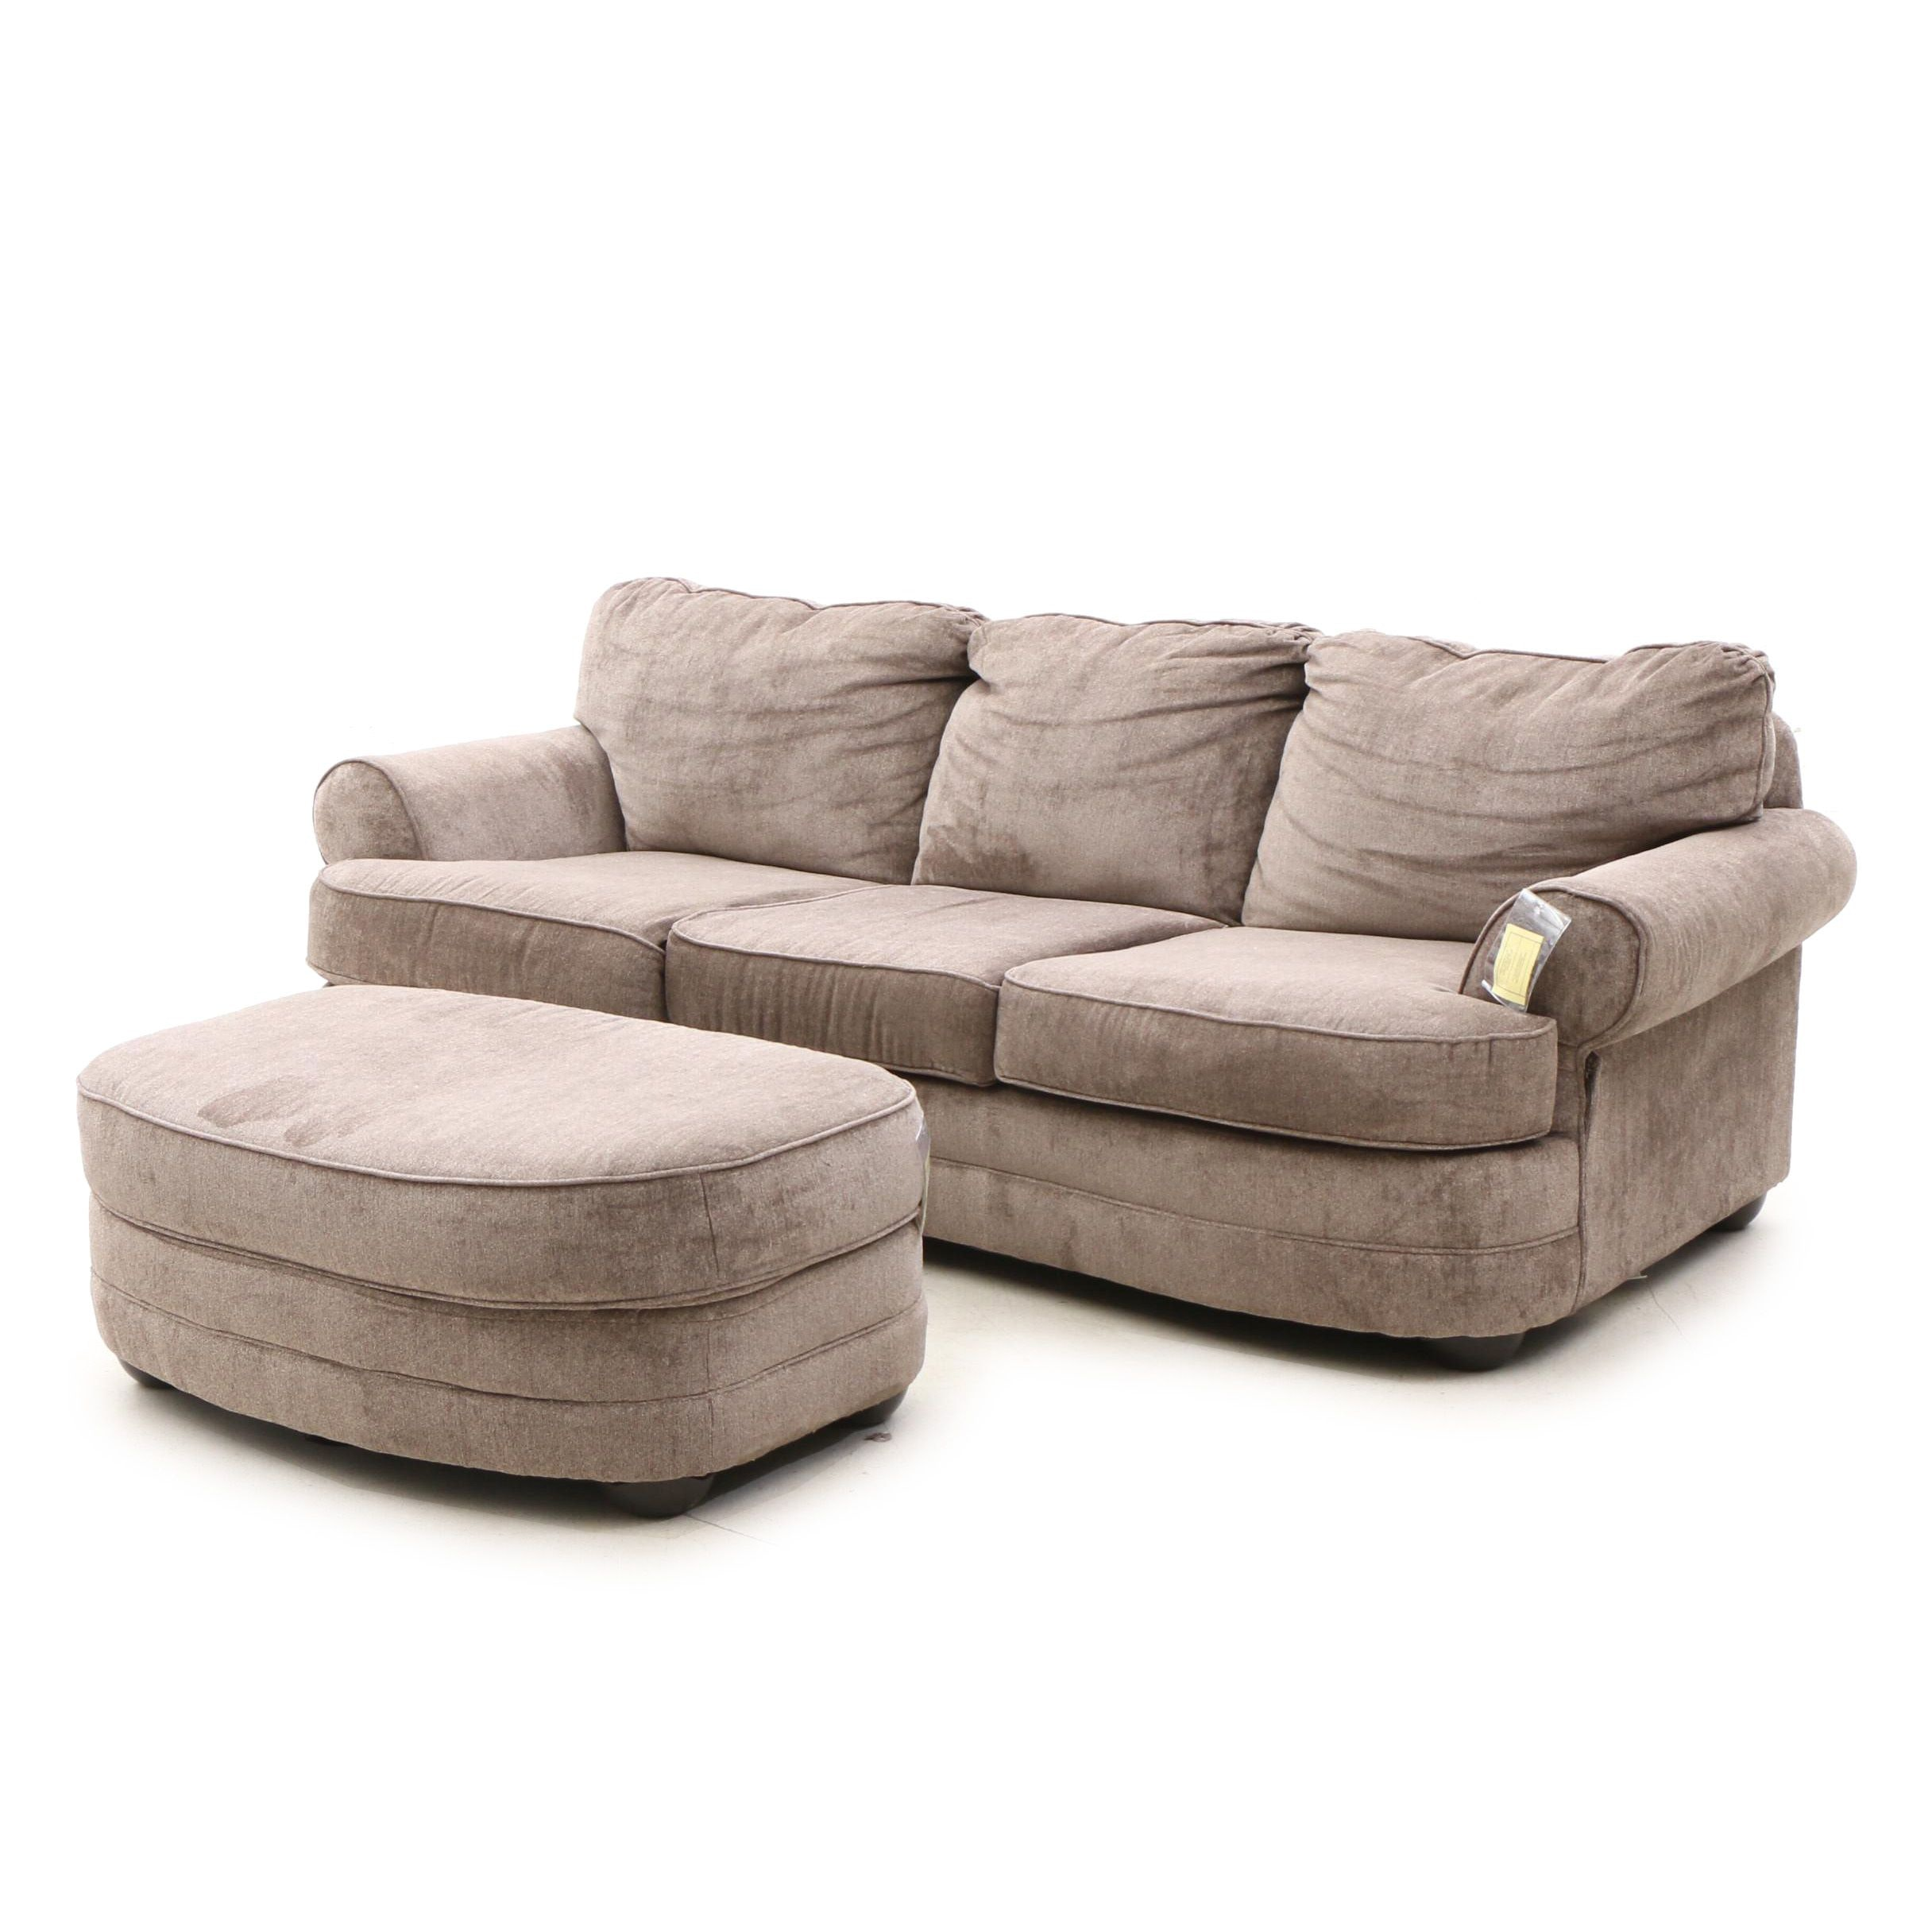 Contemporary Upholstered Sofa by United Furniture with Ottoman